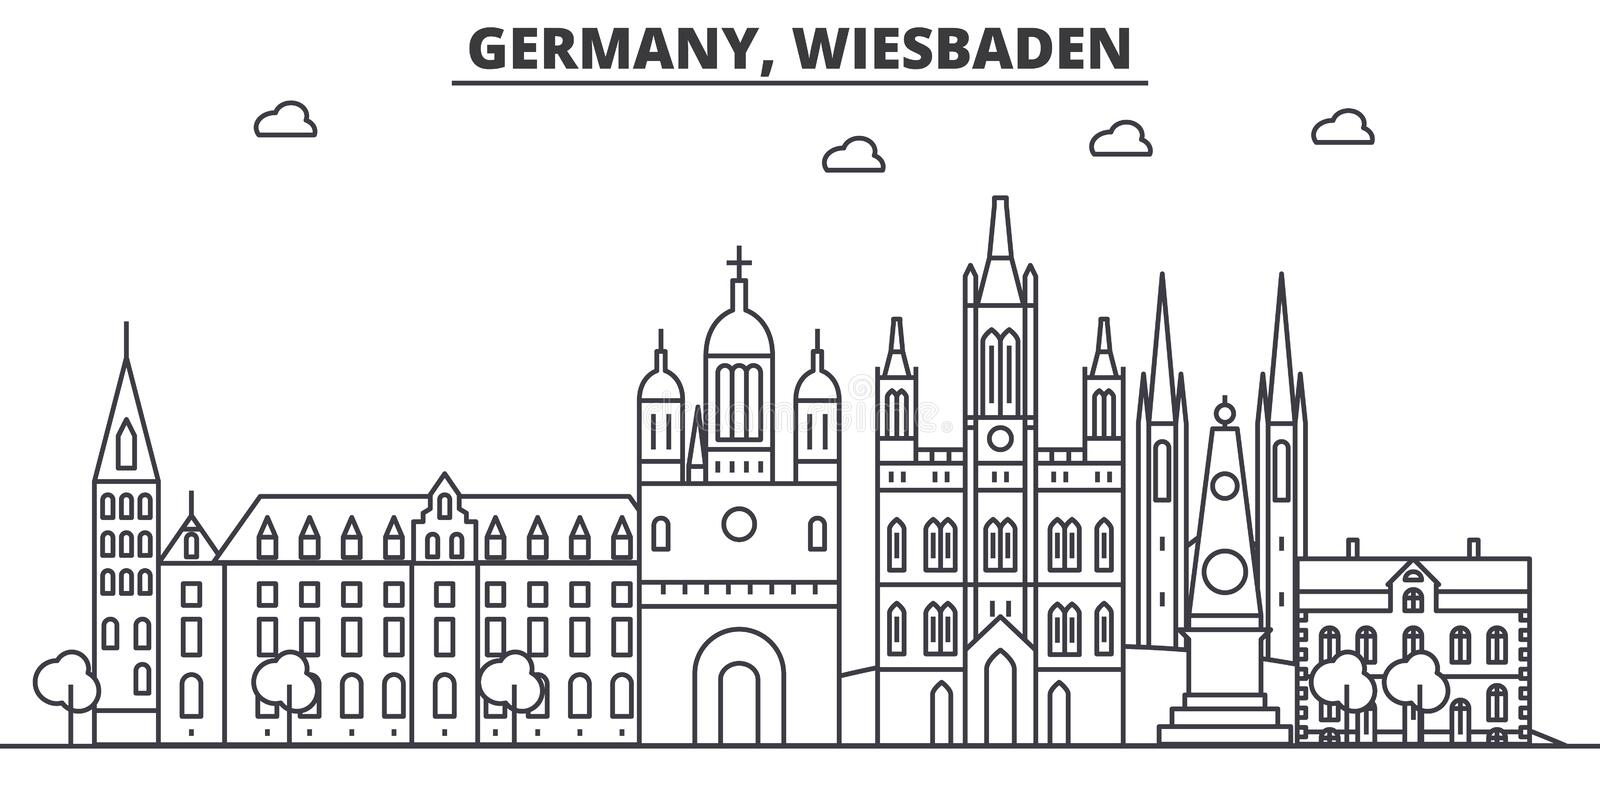 Germany, Wiesbaden architecture line skyline illustration. Linear vector cityscape with famous landmarks, city sights. Design icons. Editable strokes vector illustration